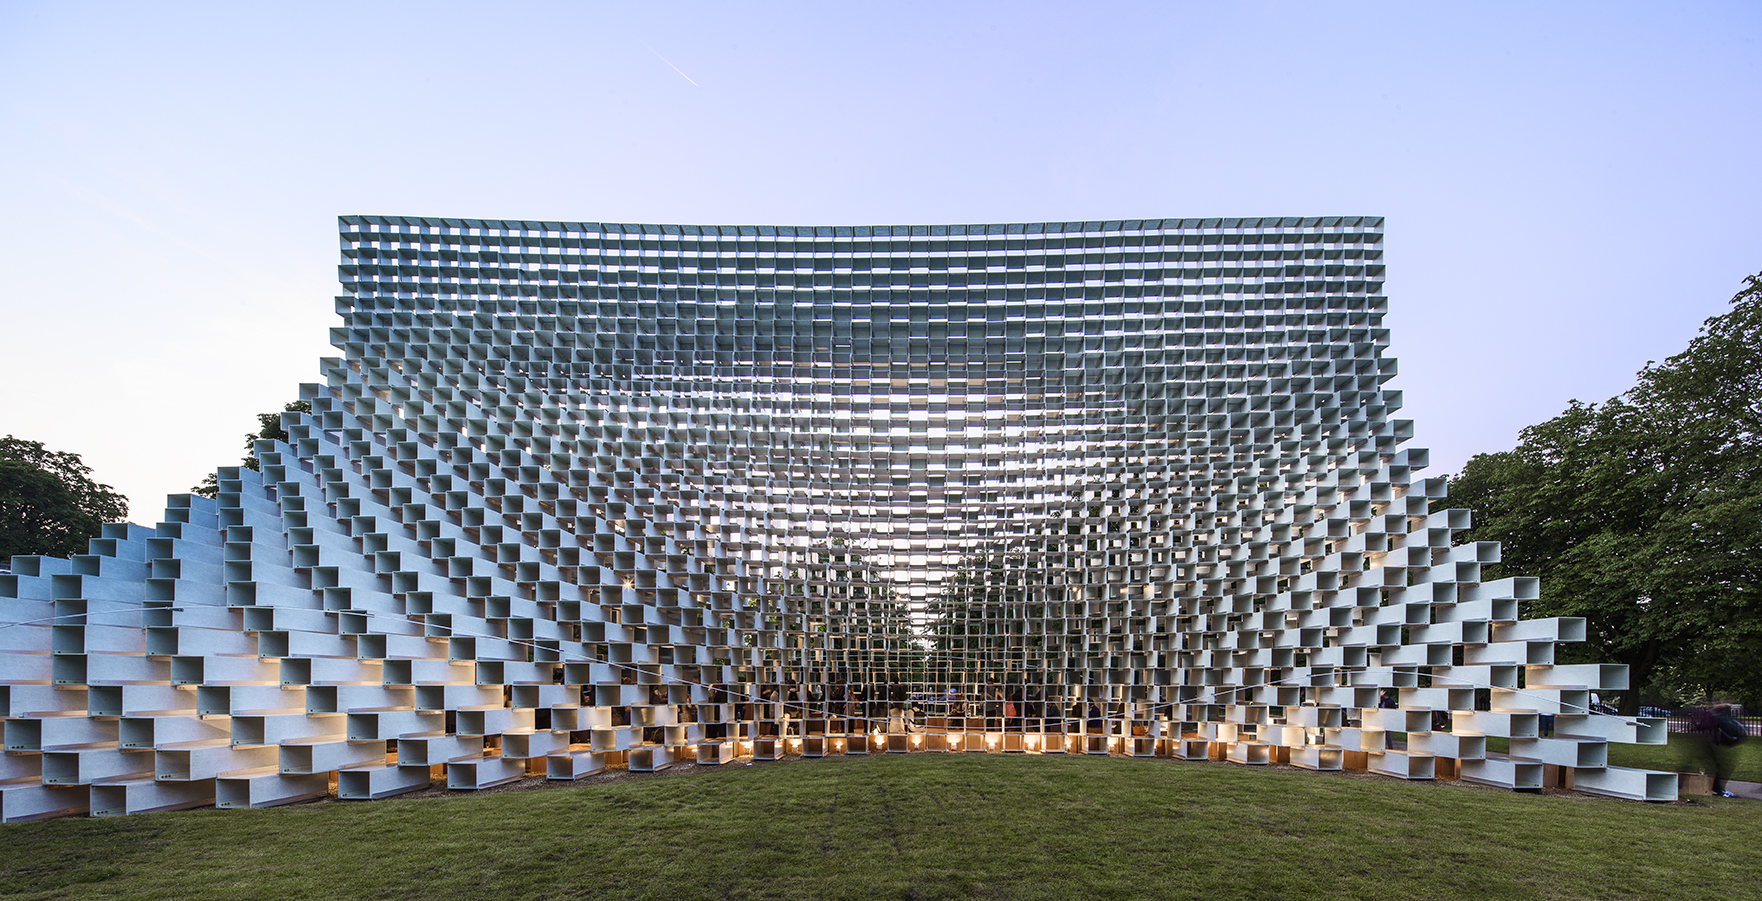 photo-boegly-grazia-2016-serpentine pavilion-london- LowDef-63